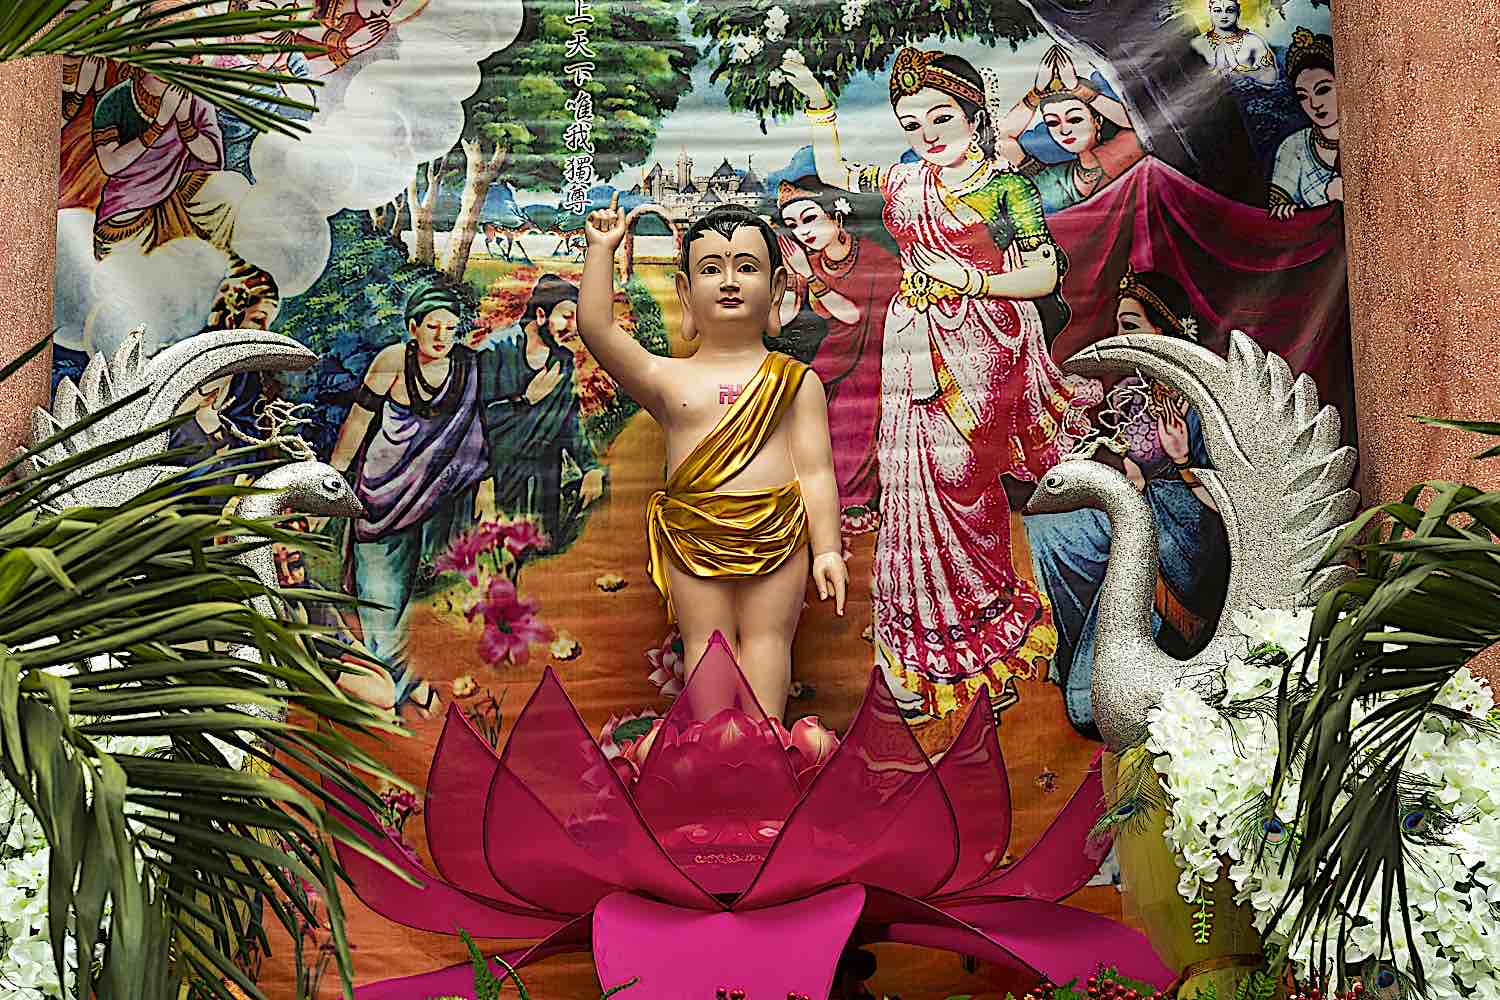 Buddha Weekly Baby Buddha the conqueror took seven steps immediately after birth dreamstime xxl 91402790 Buddhism